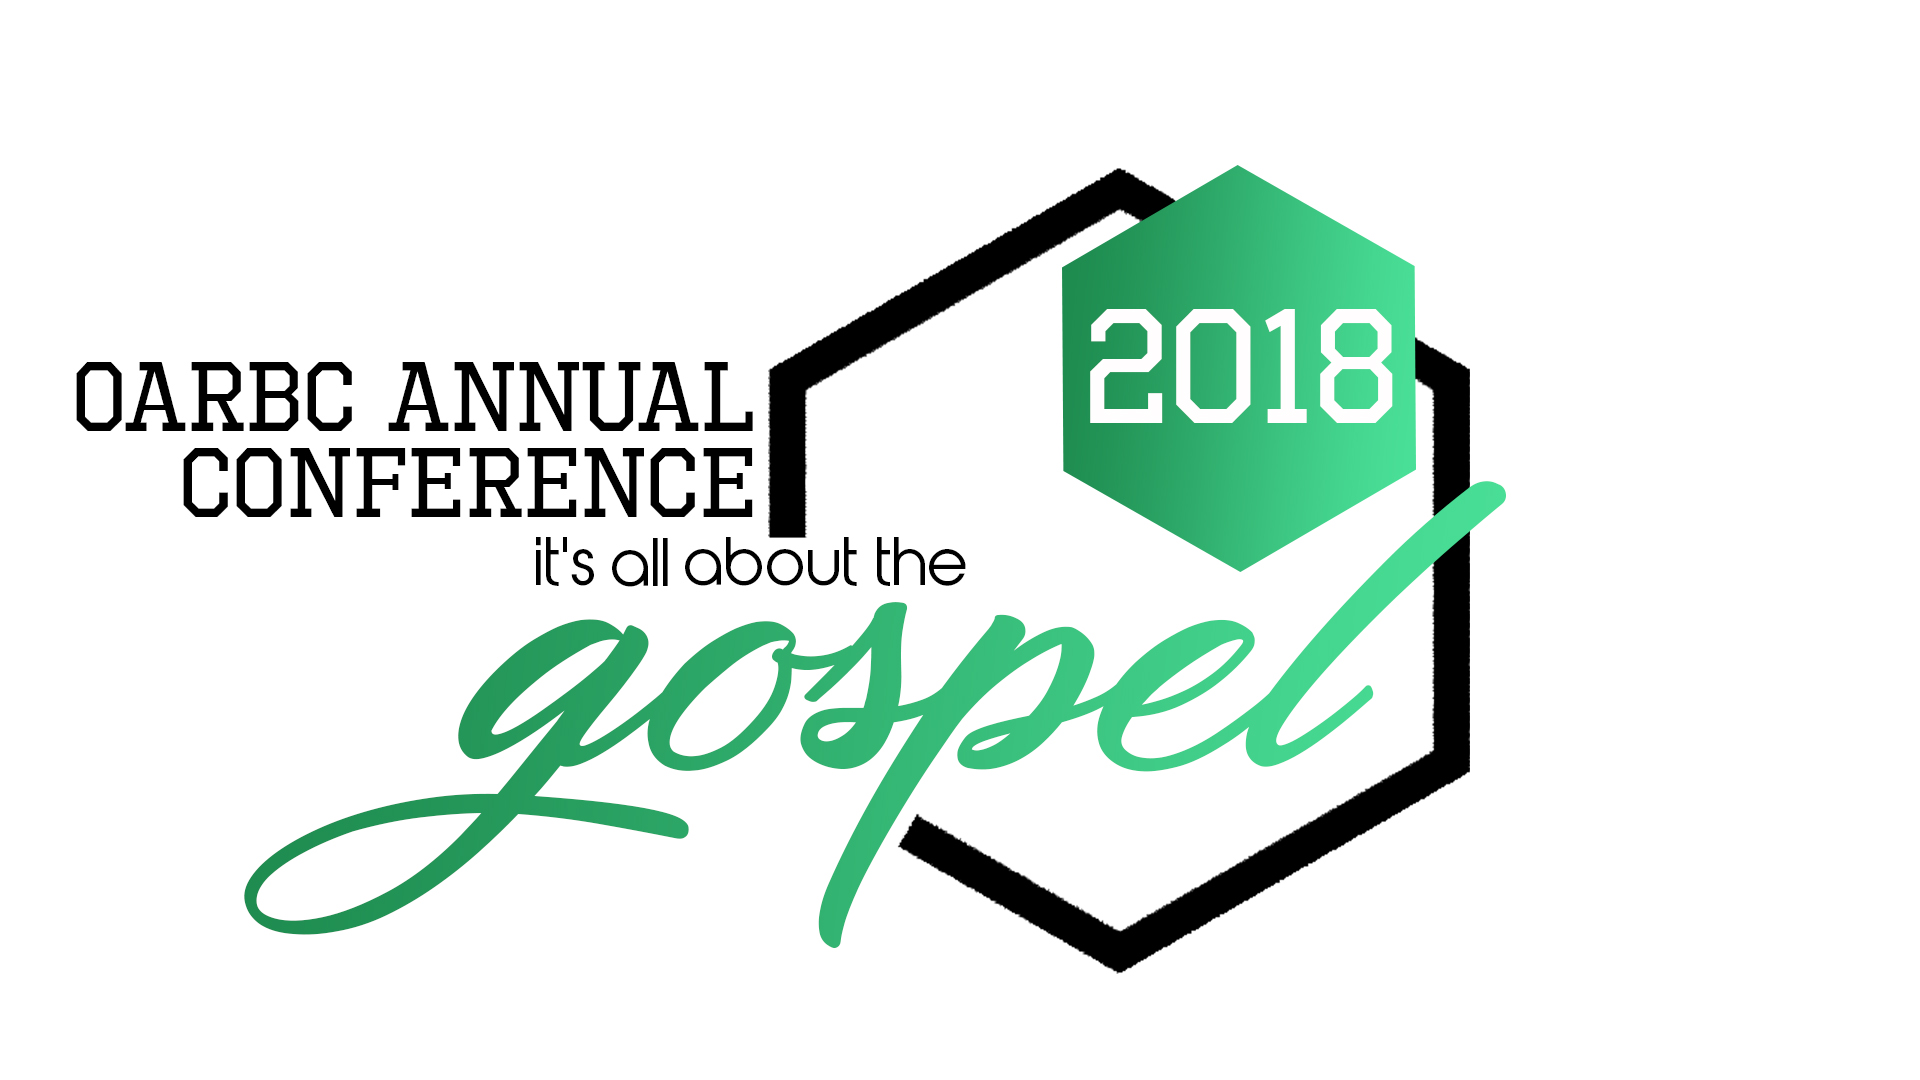 All About the Gospel Annual Conference 1